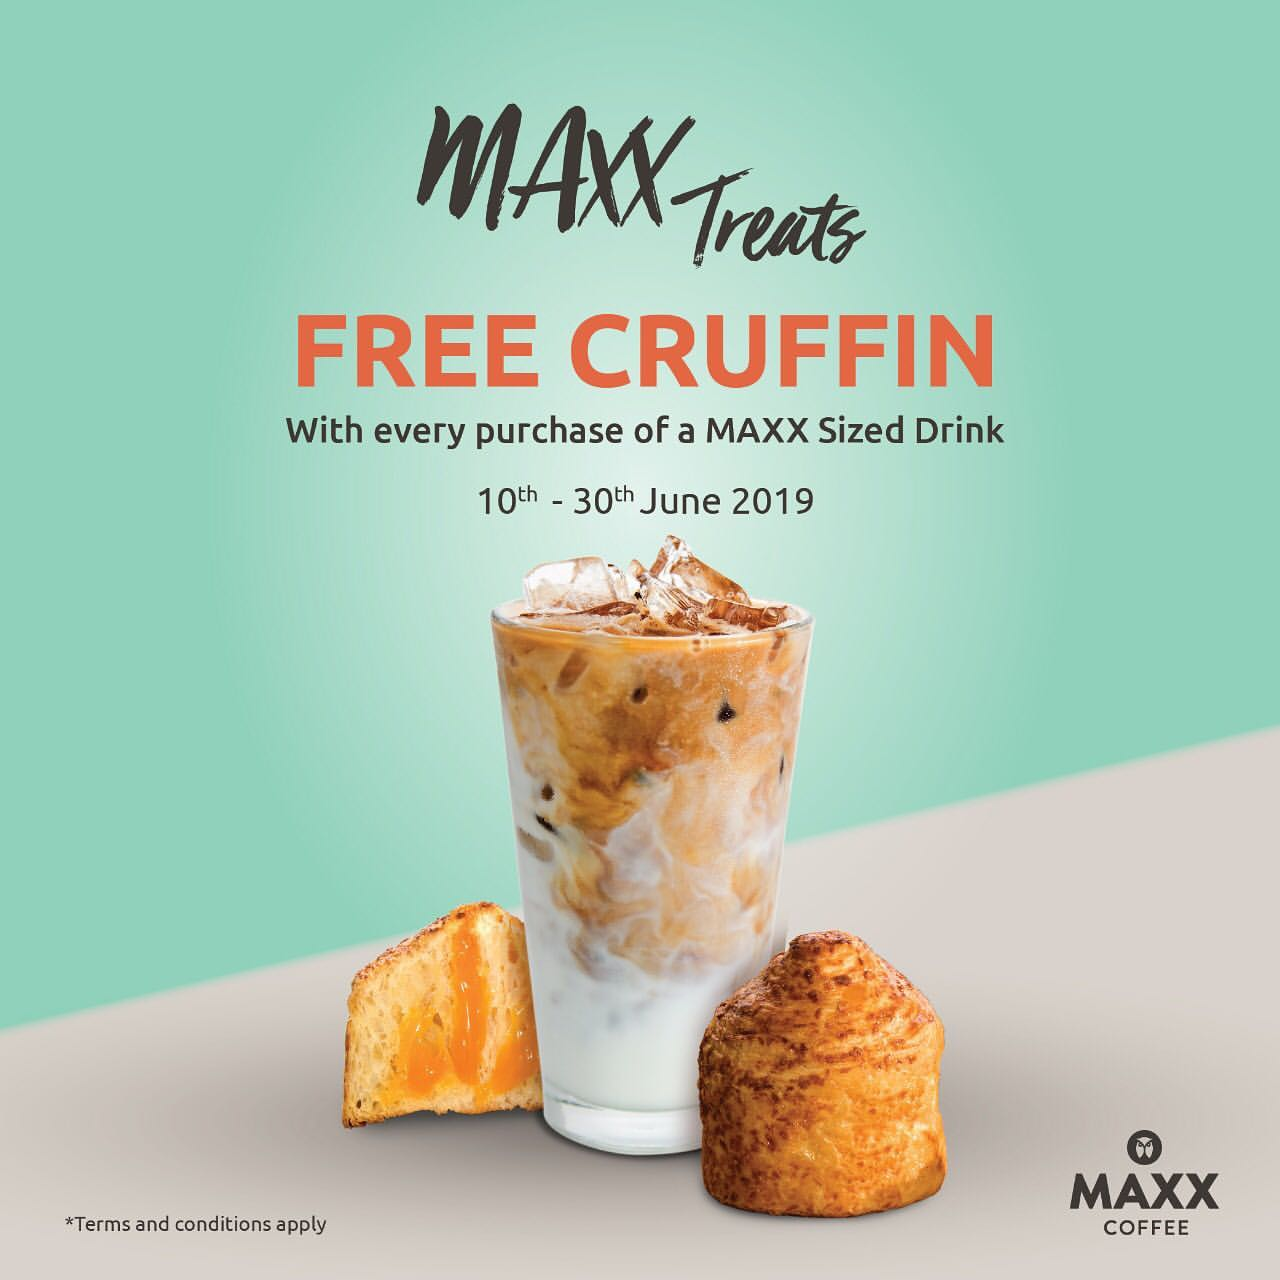 MAXX COFFEE Promo FREE Cruffin with every purchase of a Maxx sized beverage